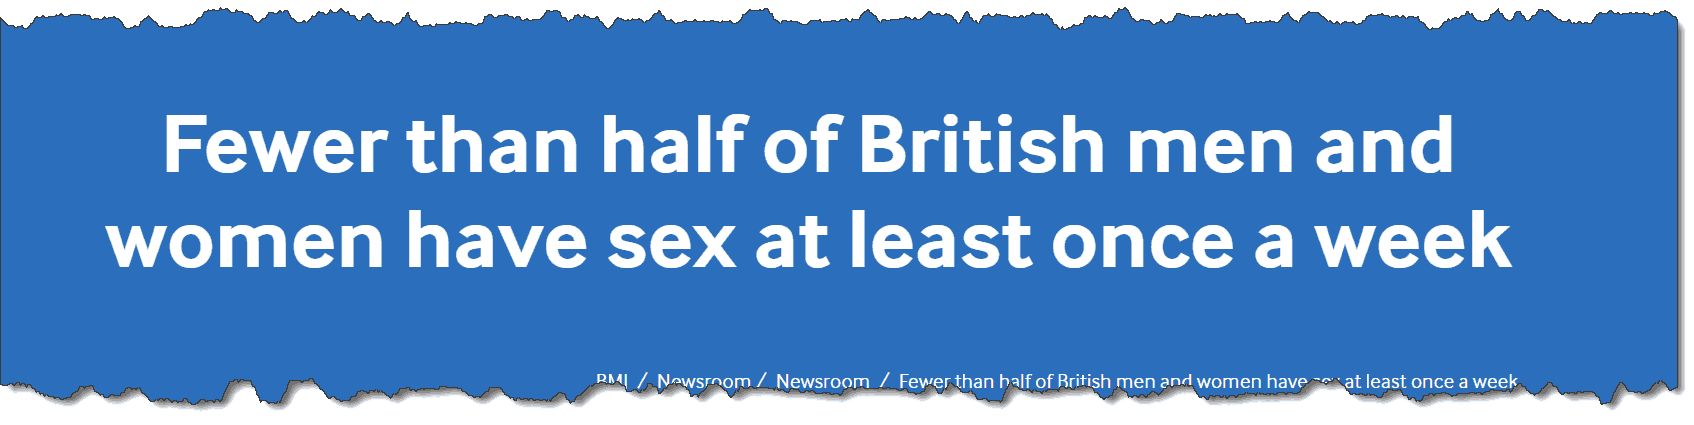 Fewer than half of British men and women have sex at least once a week